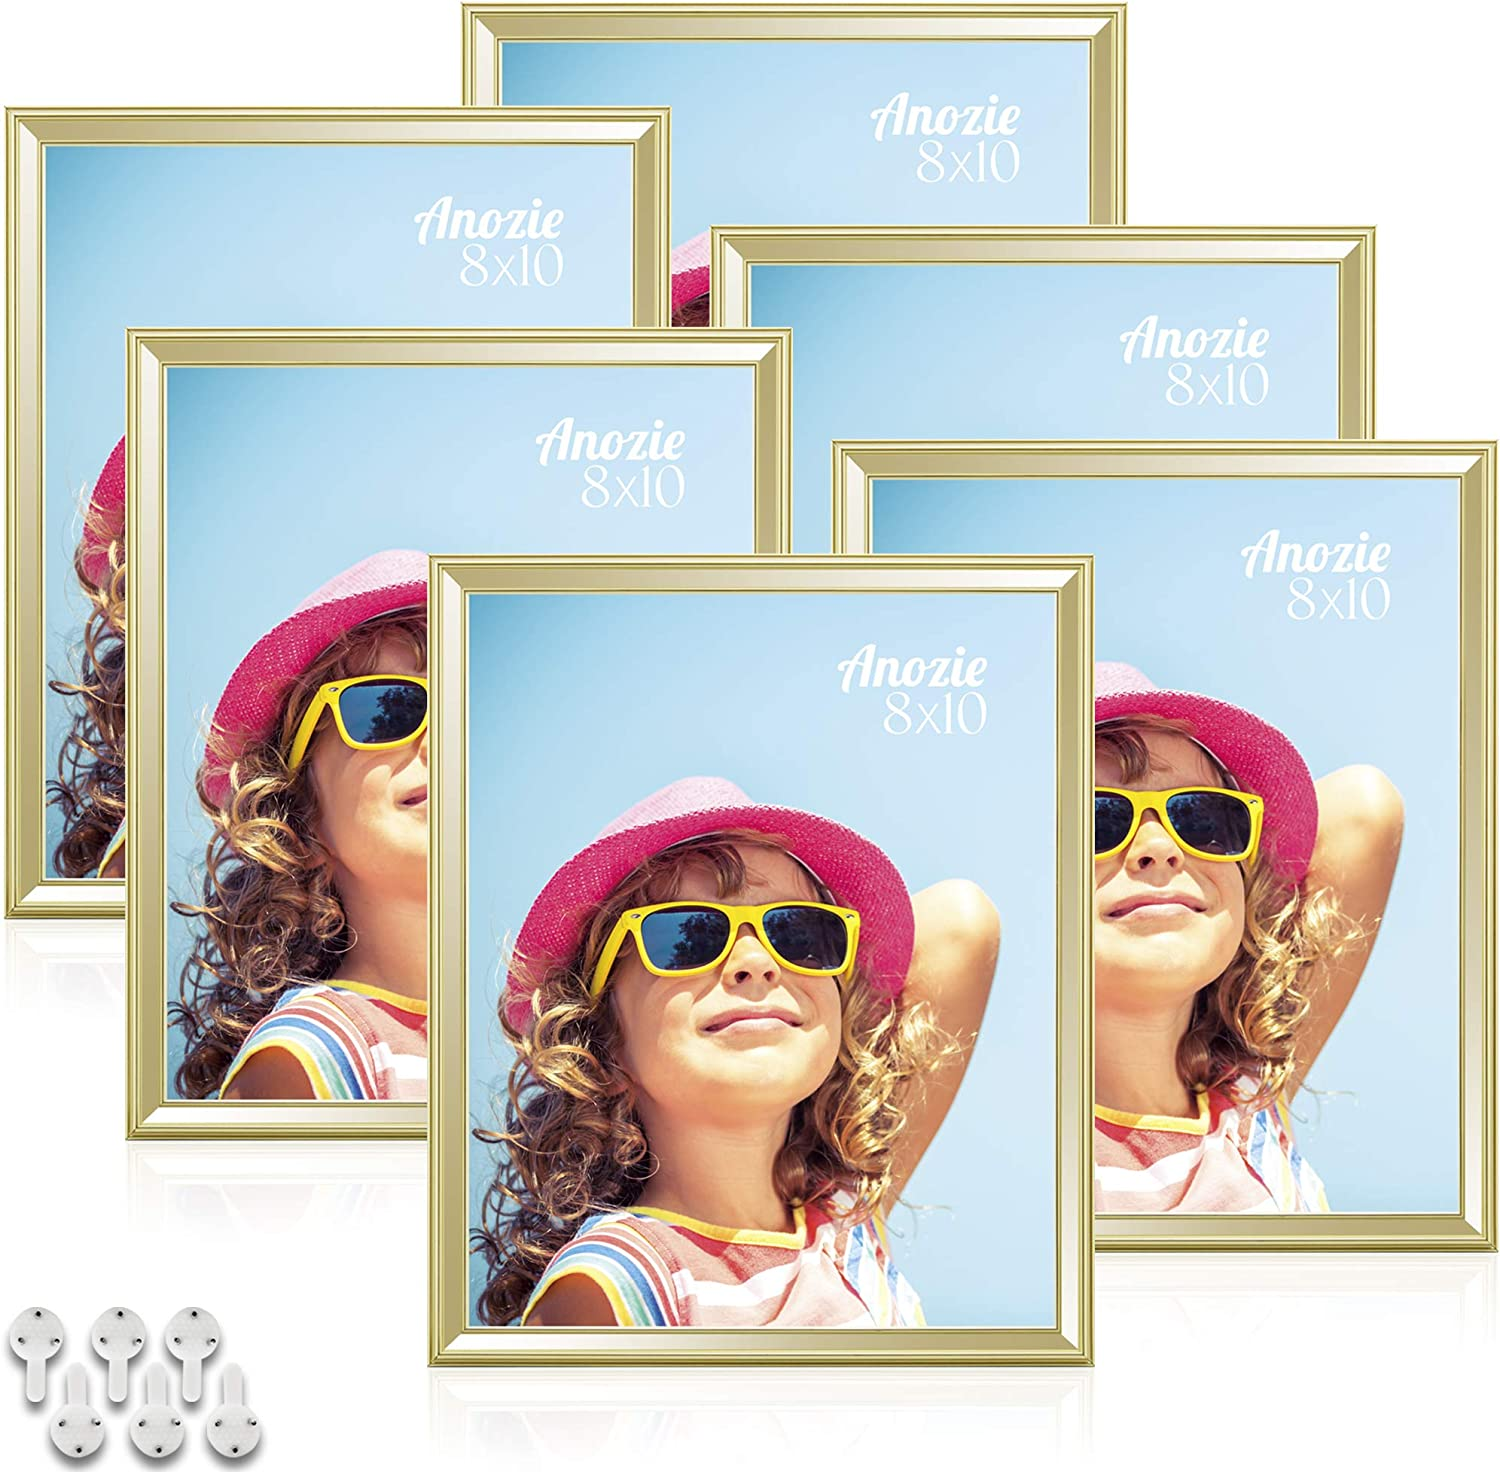 Anozie 8X10 Tulsa Mall Picture Frames safety 6 Pack Gold Moulding Simple Pho Line